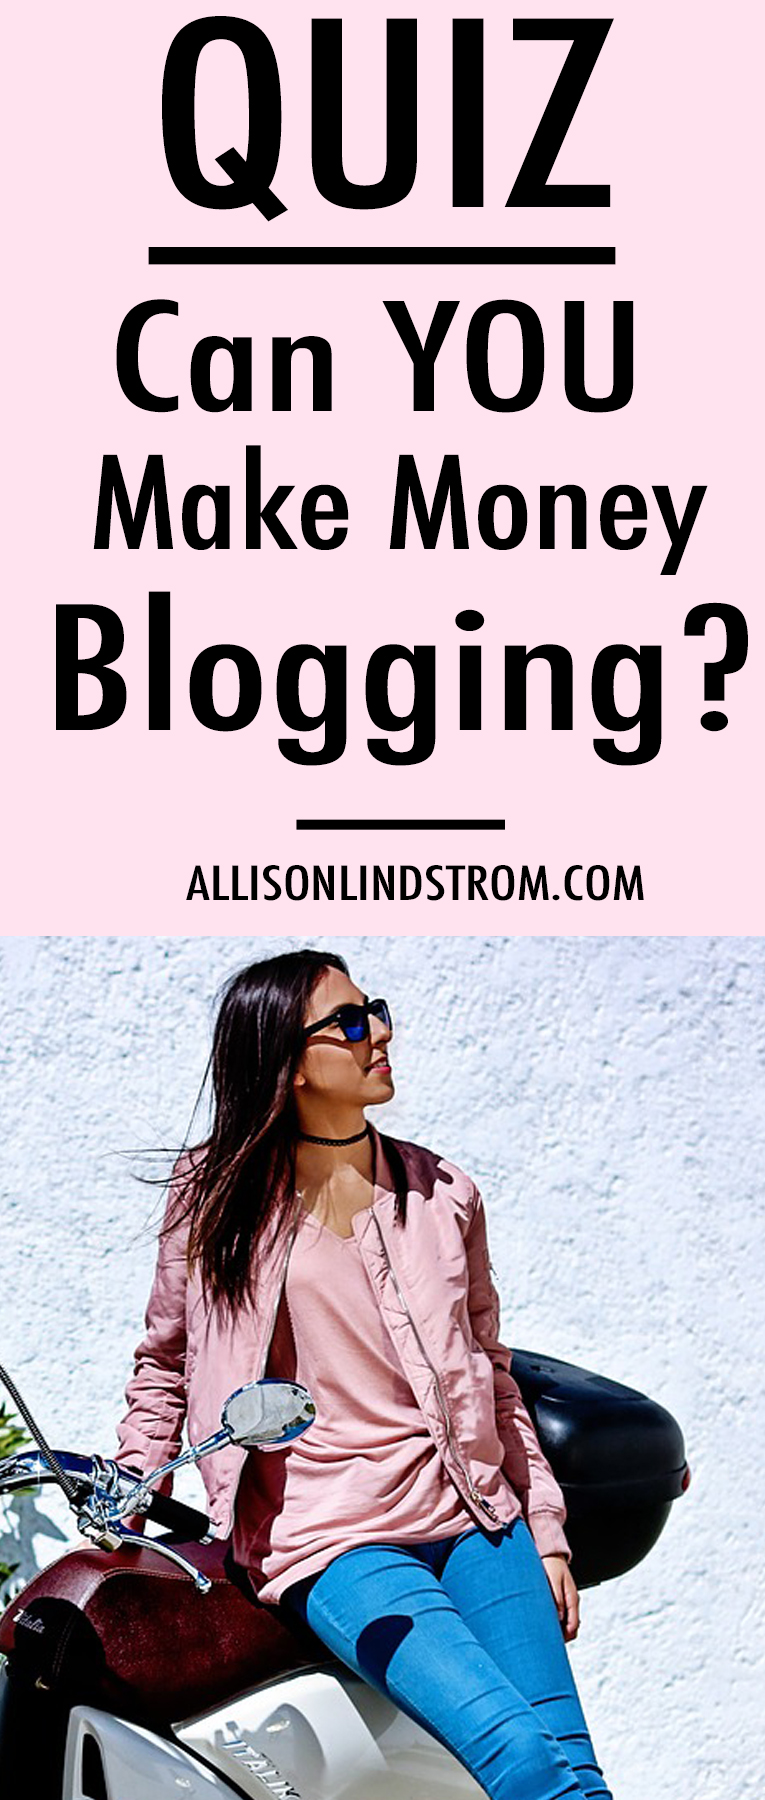 Do you have what it takes to build a profitable blog? Blogging for fun is one thing but blogging for money is an entirely different experience! Take my FREE quiz to find out if you have what it takes to rock a profitable blogging business!